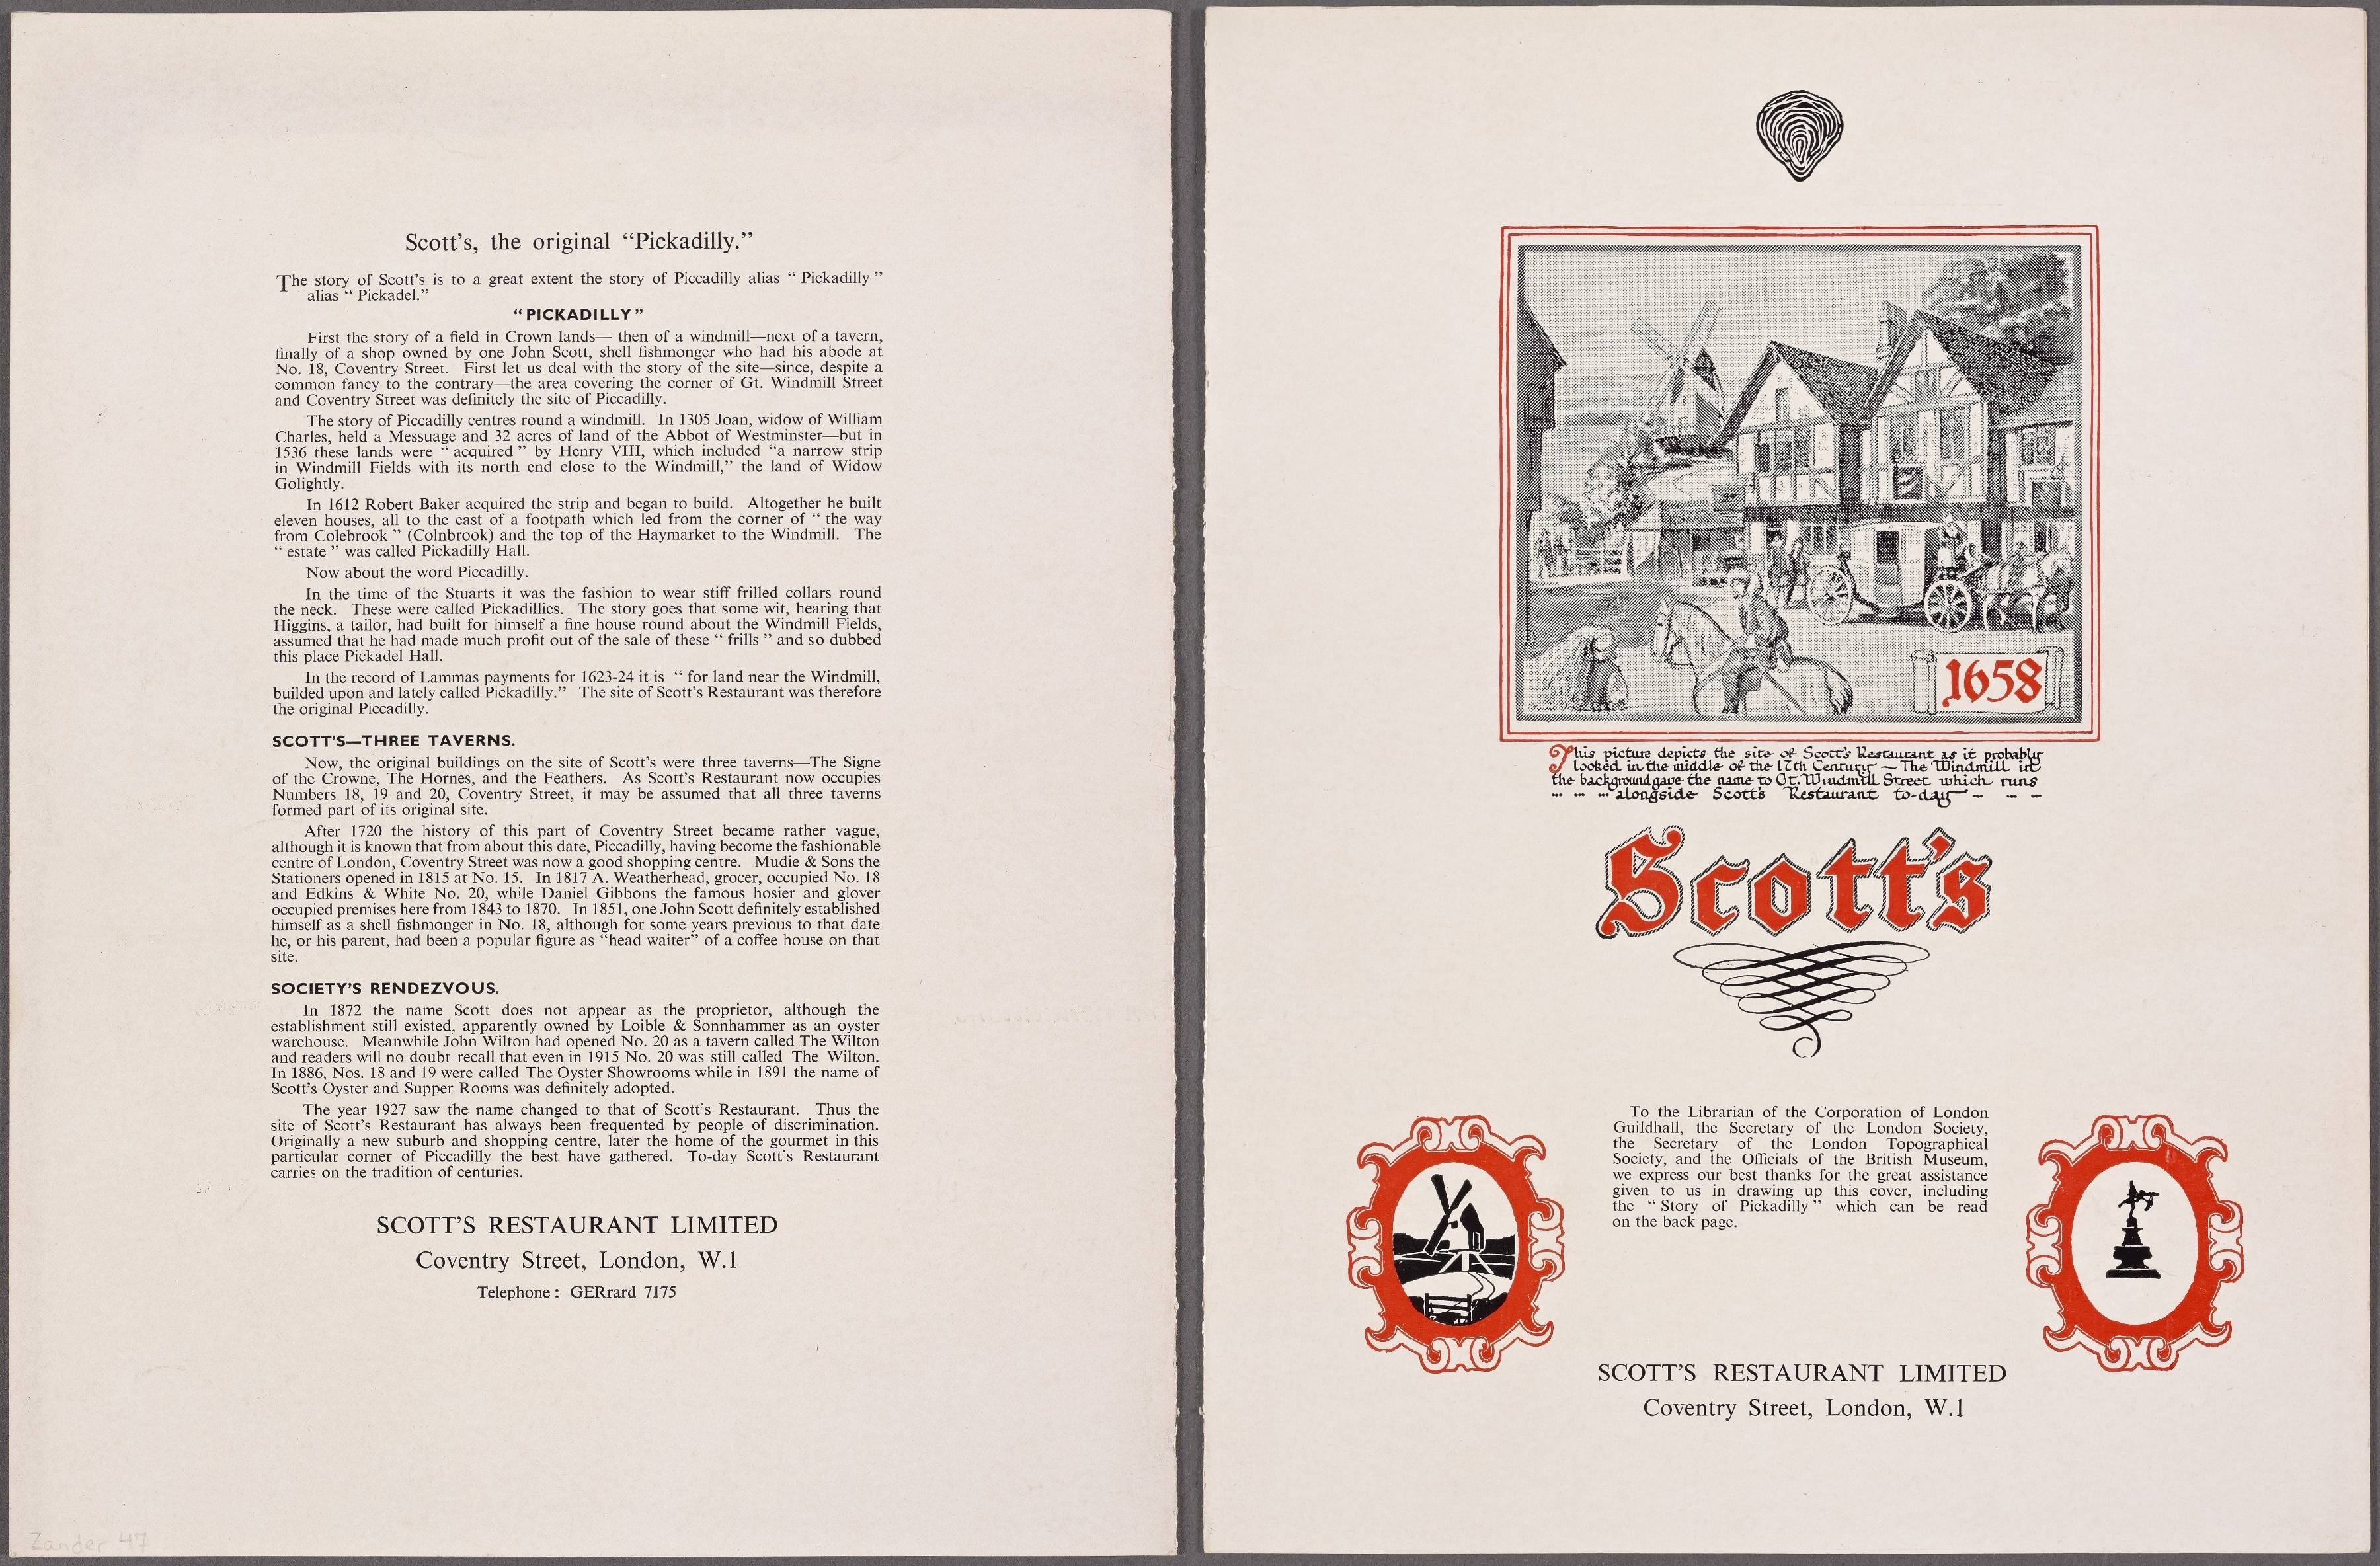 The back and front cover of Scott's Restaurant's menu dated 1961.